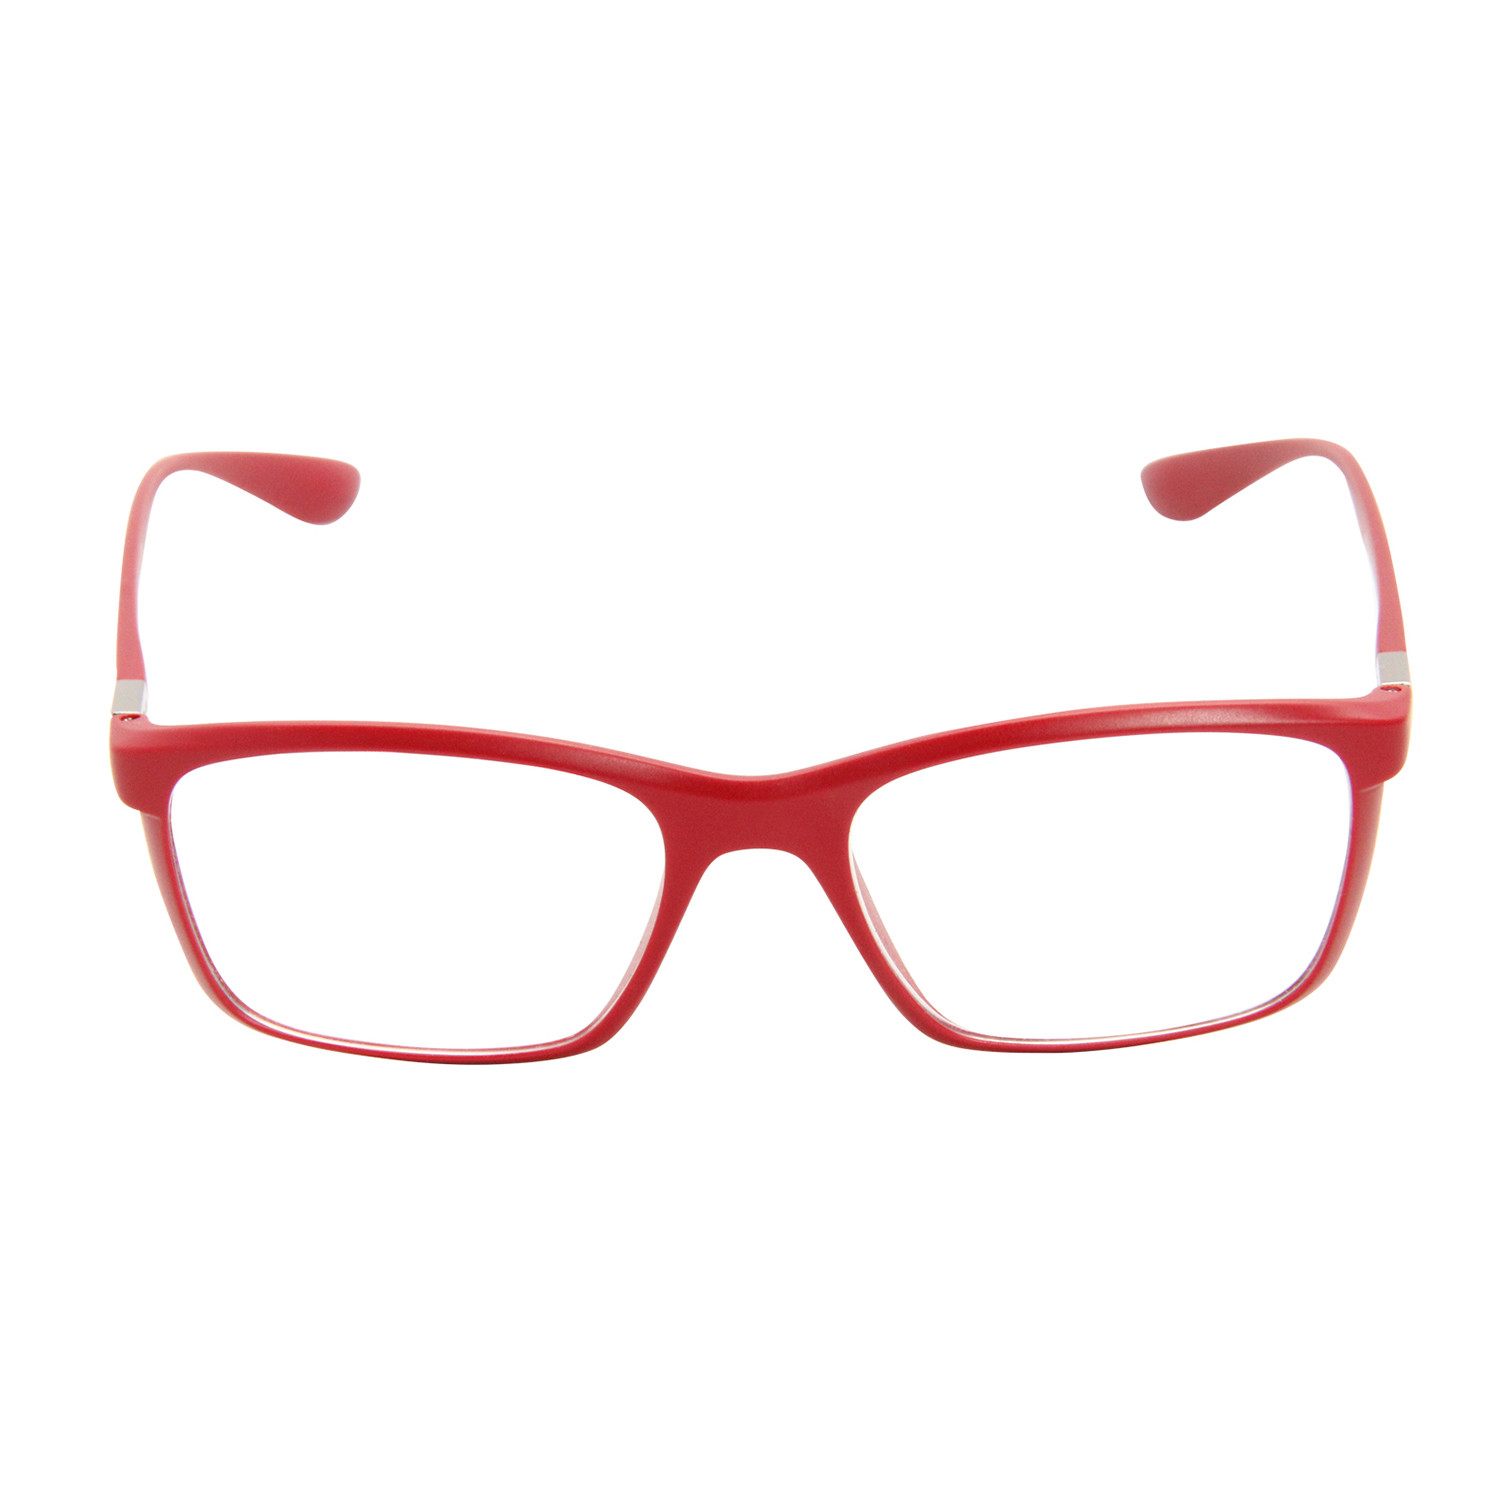 Rayban RX Glasses // RB7036 // 52mm Red Frame - Designer Optical ...